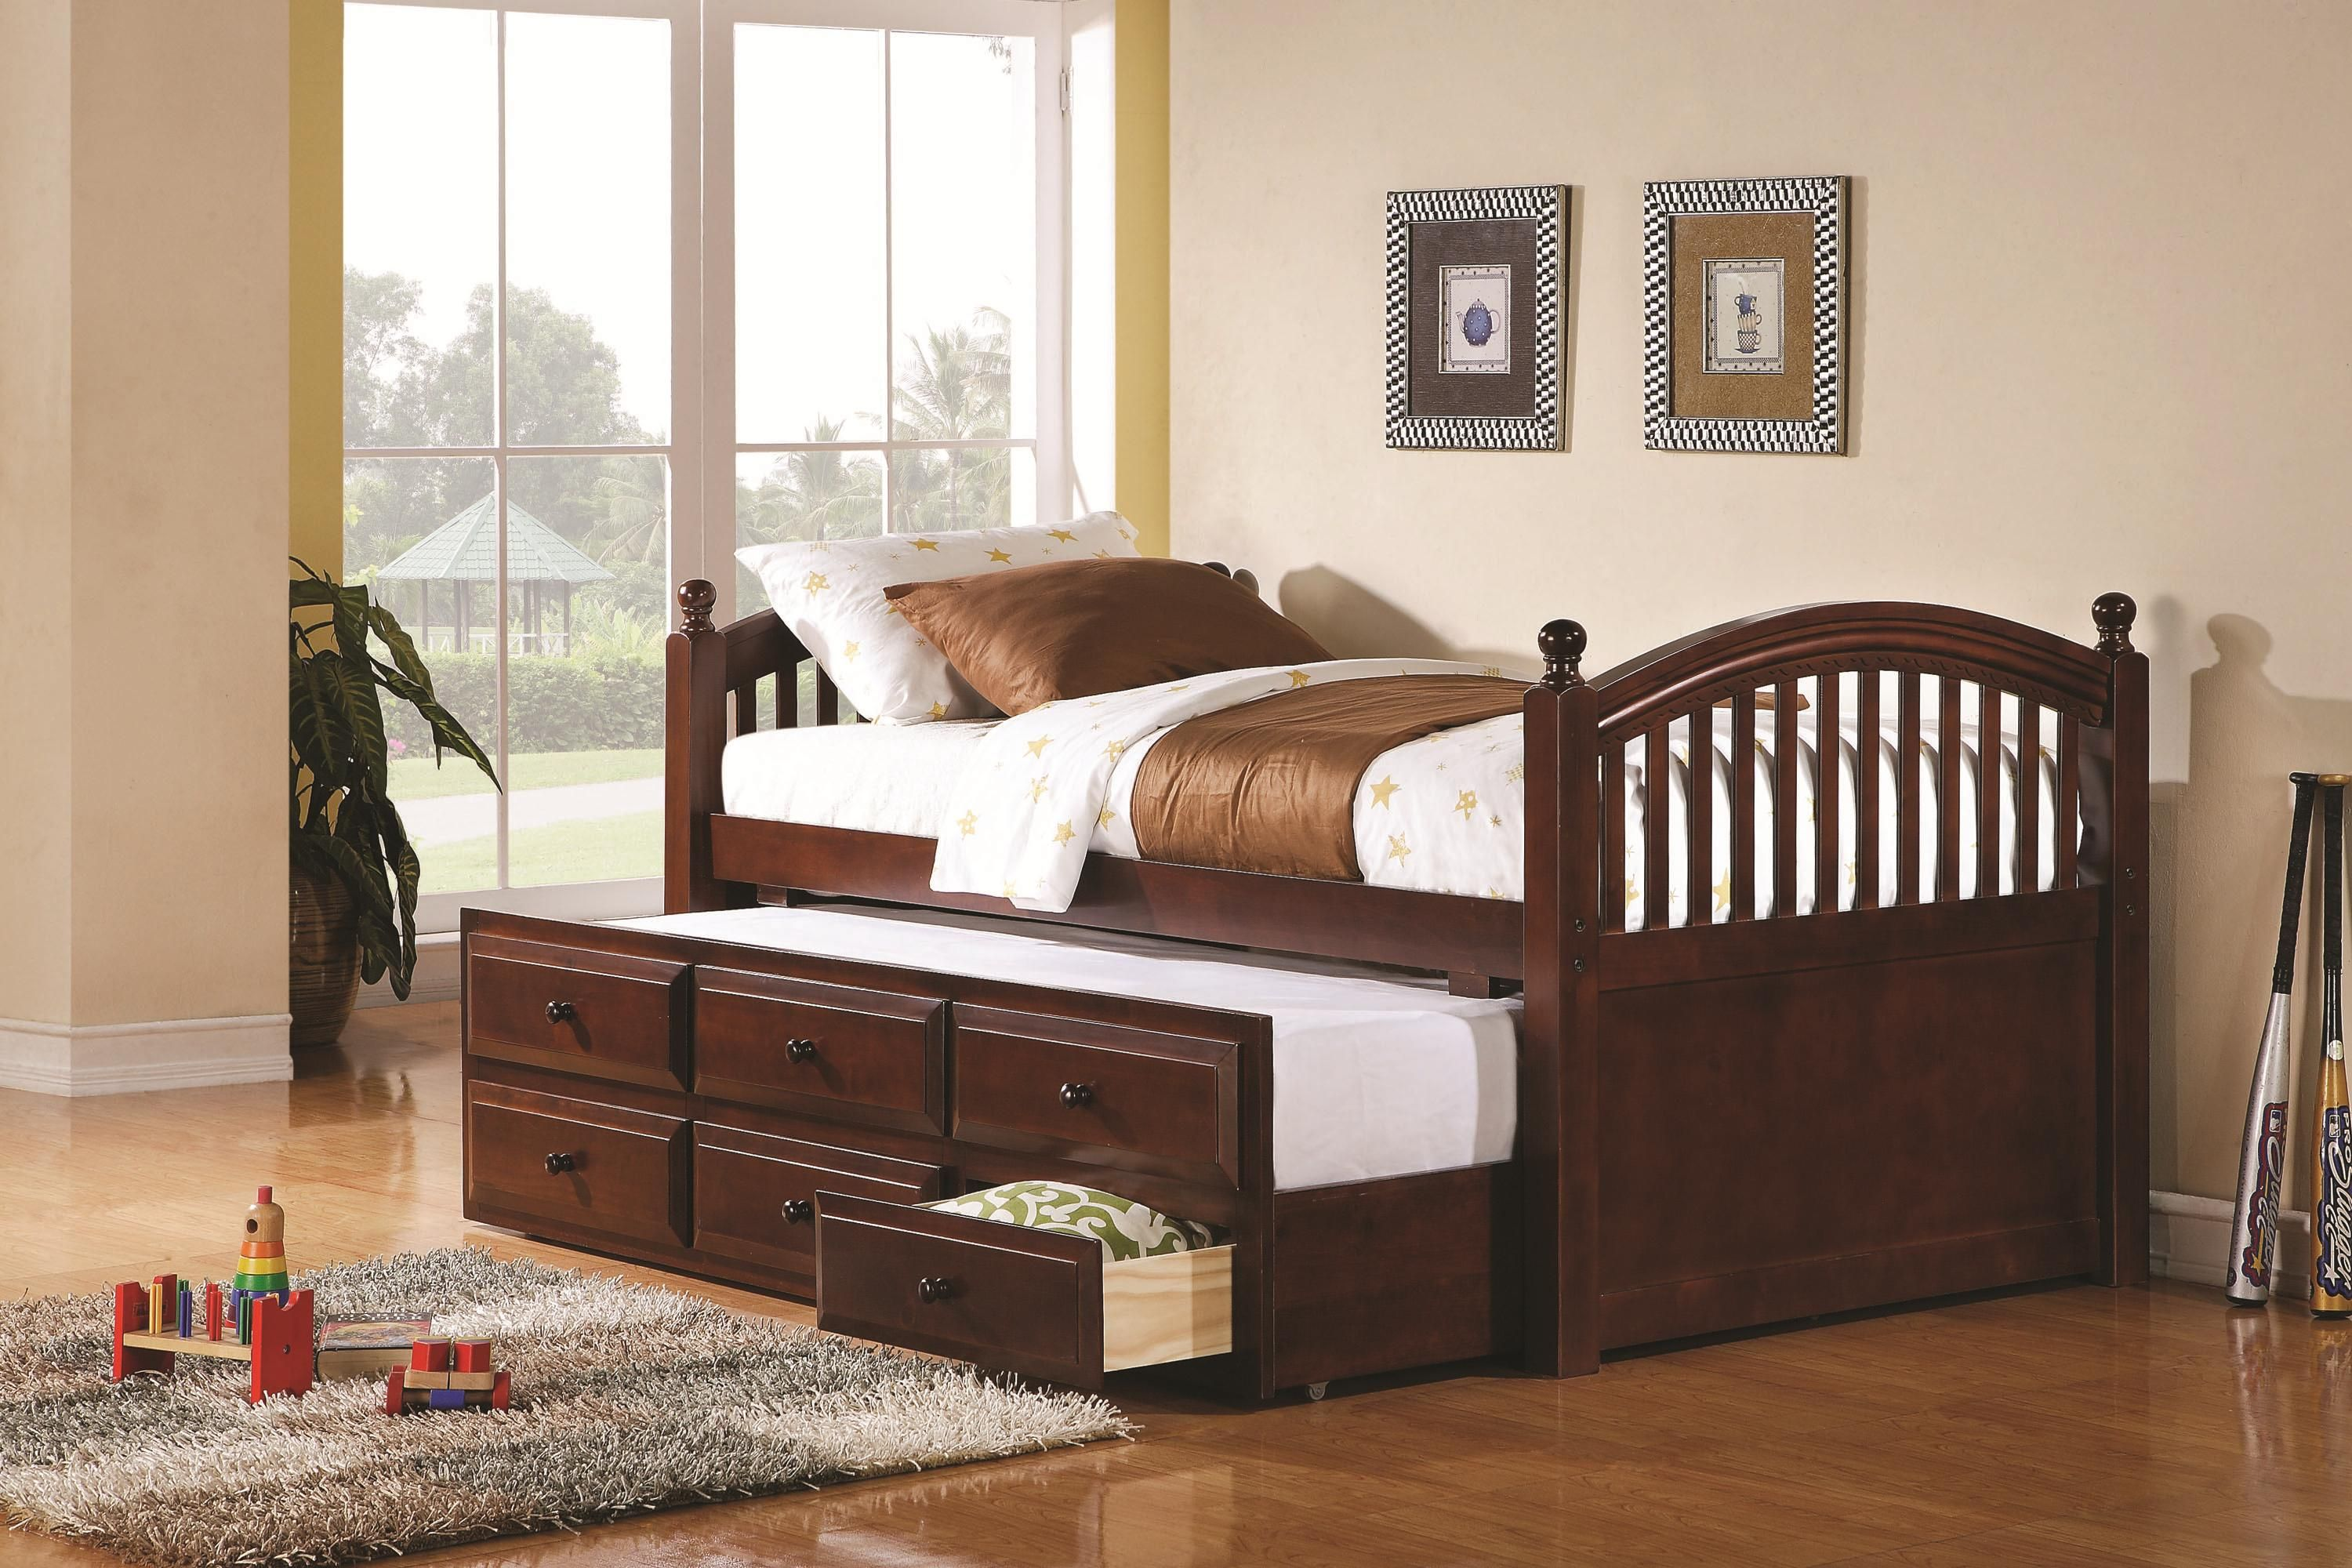 Daybeds by coaster captainus daybed with trundle and storage drawers